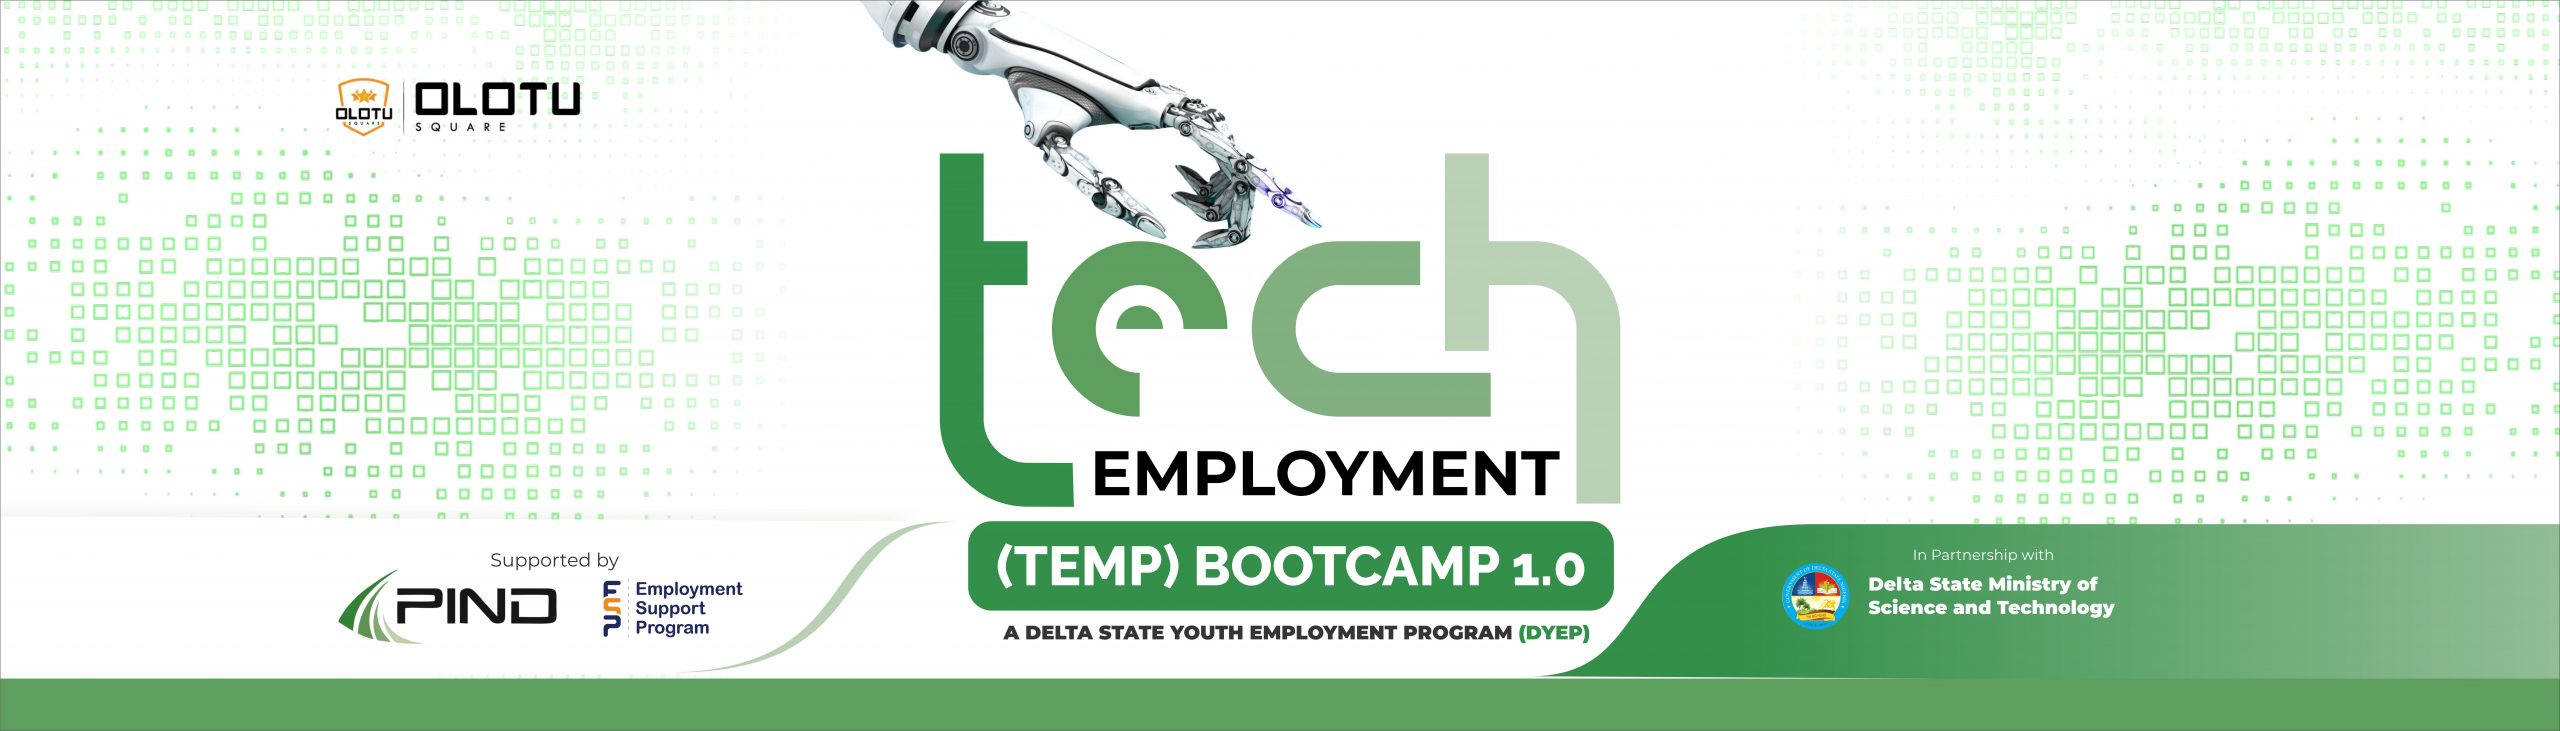 Technology Employment Bootcamp for Youths